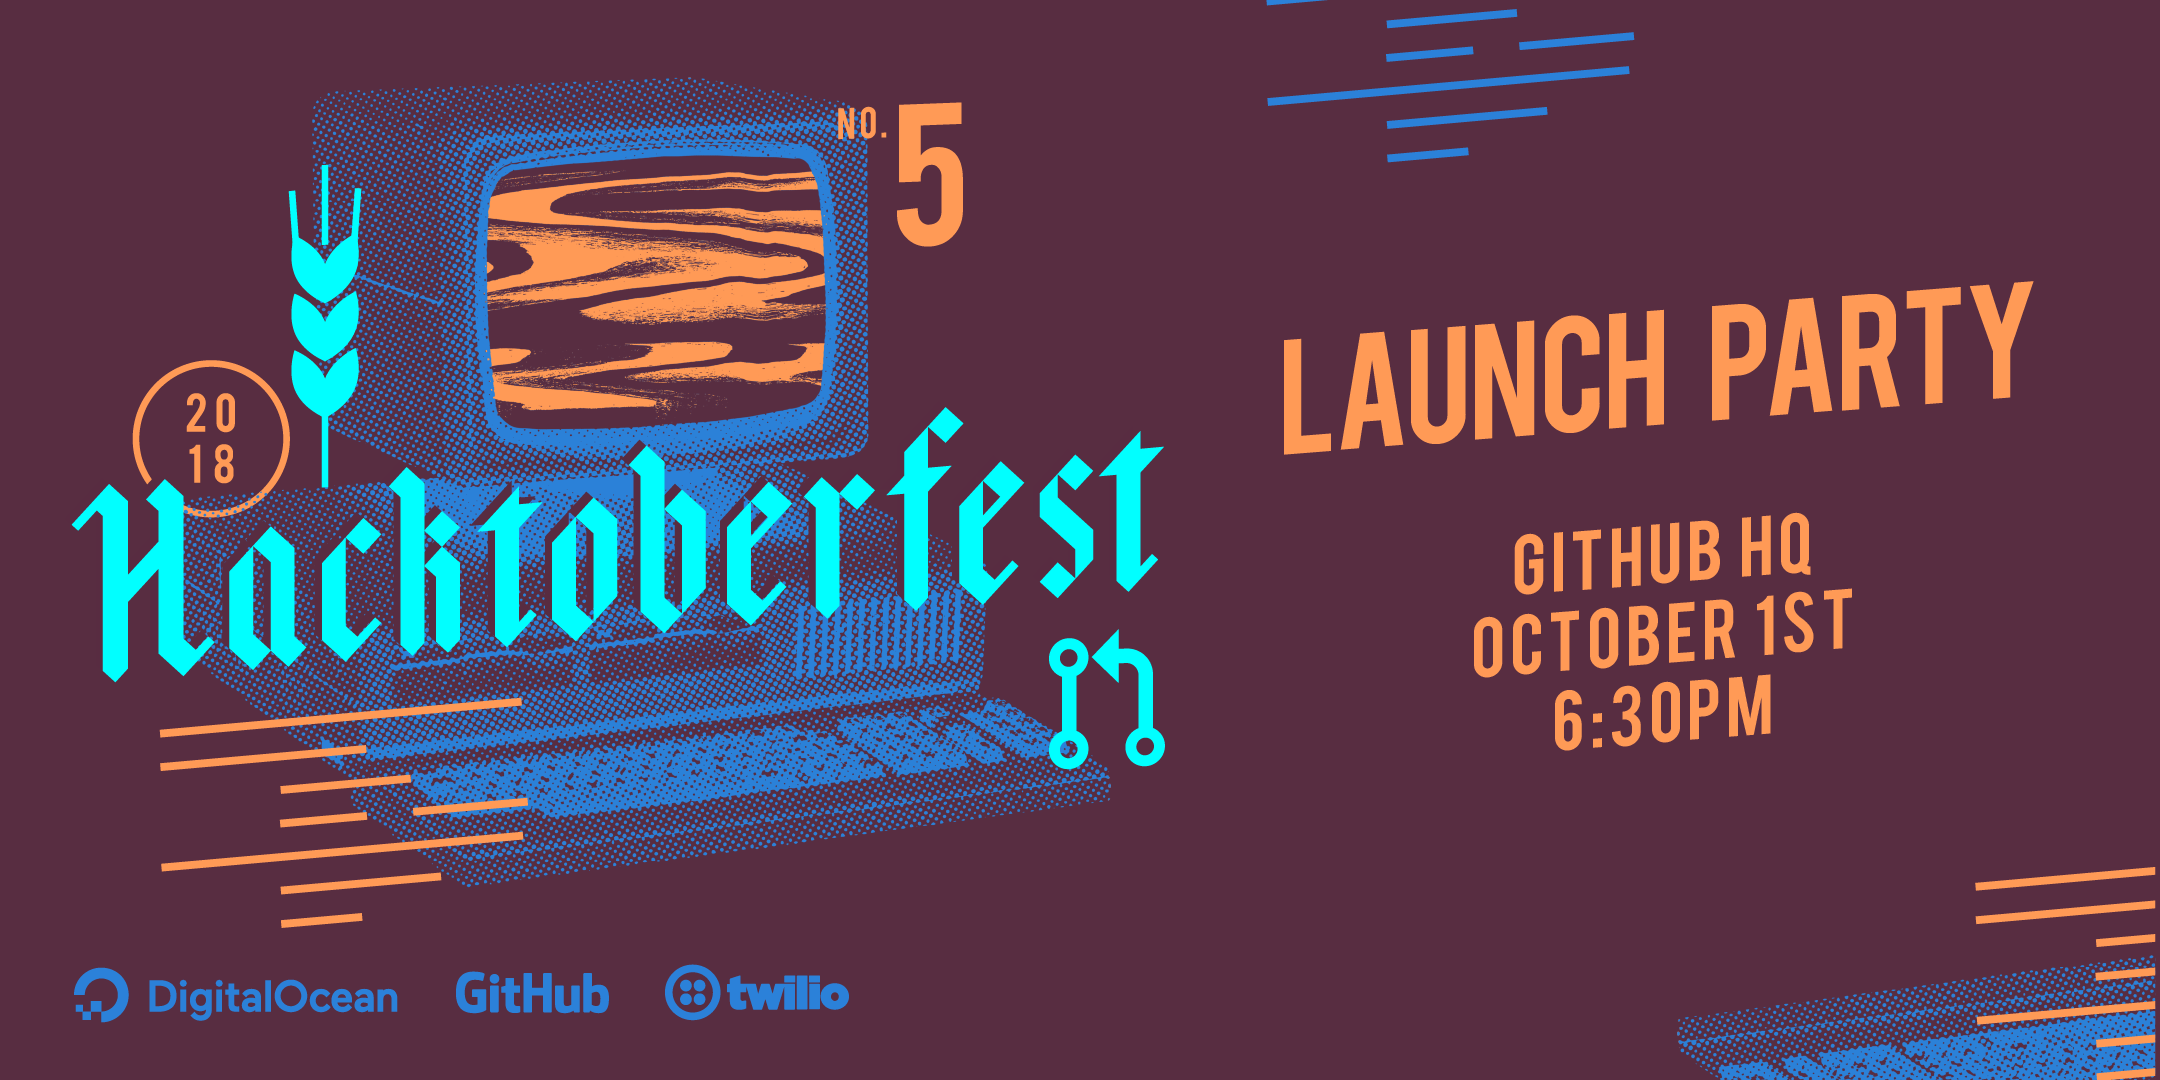 Hacktoberfest 2018 Launch Party